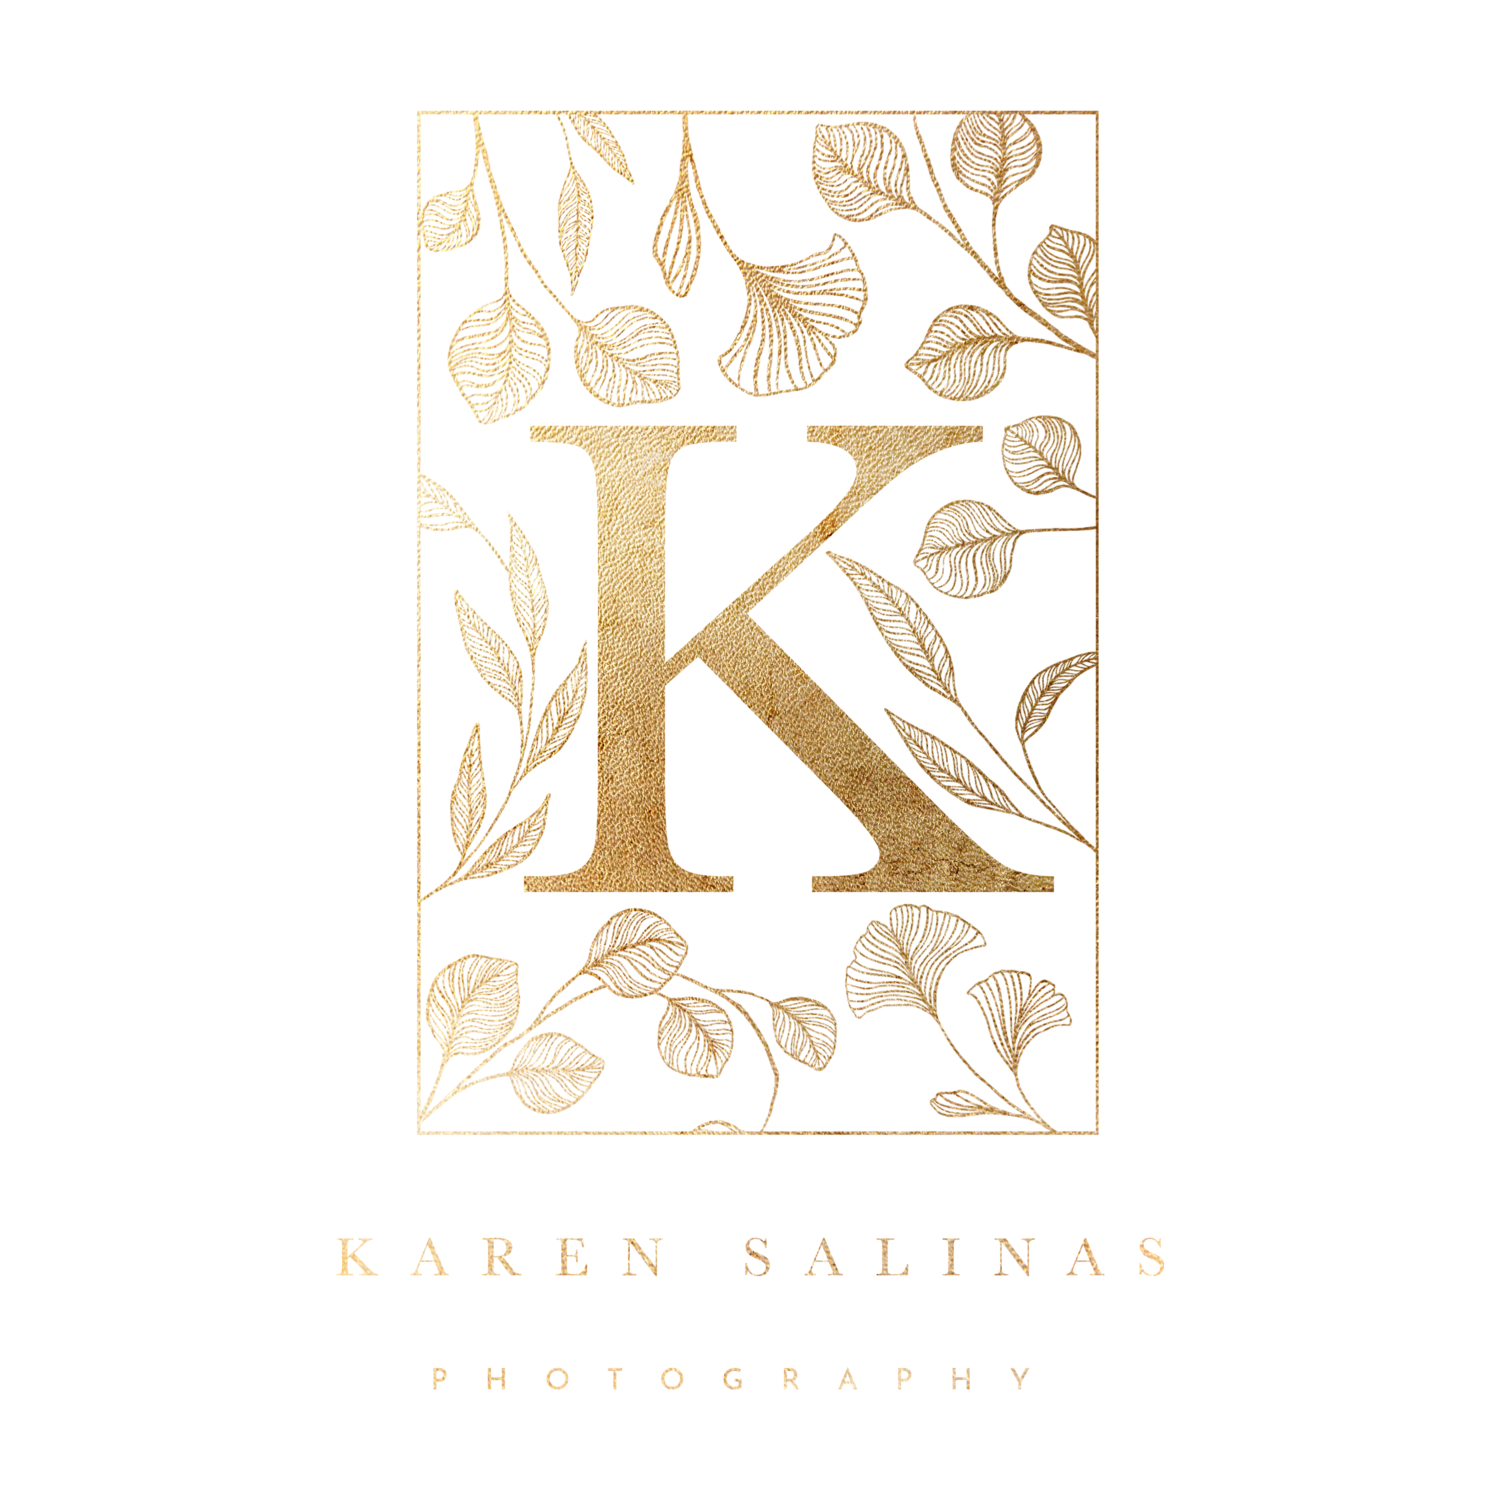 KAREN SALINAS PHOTOGRAPHY